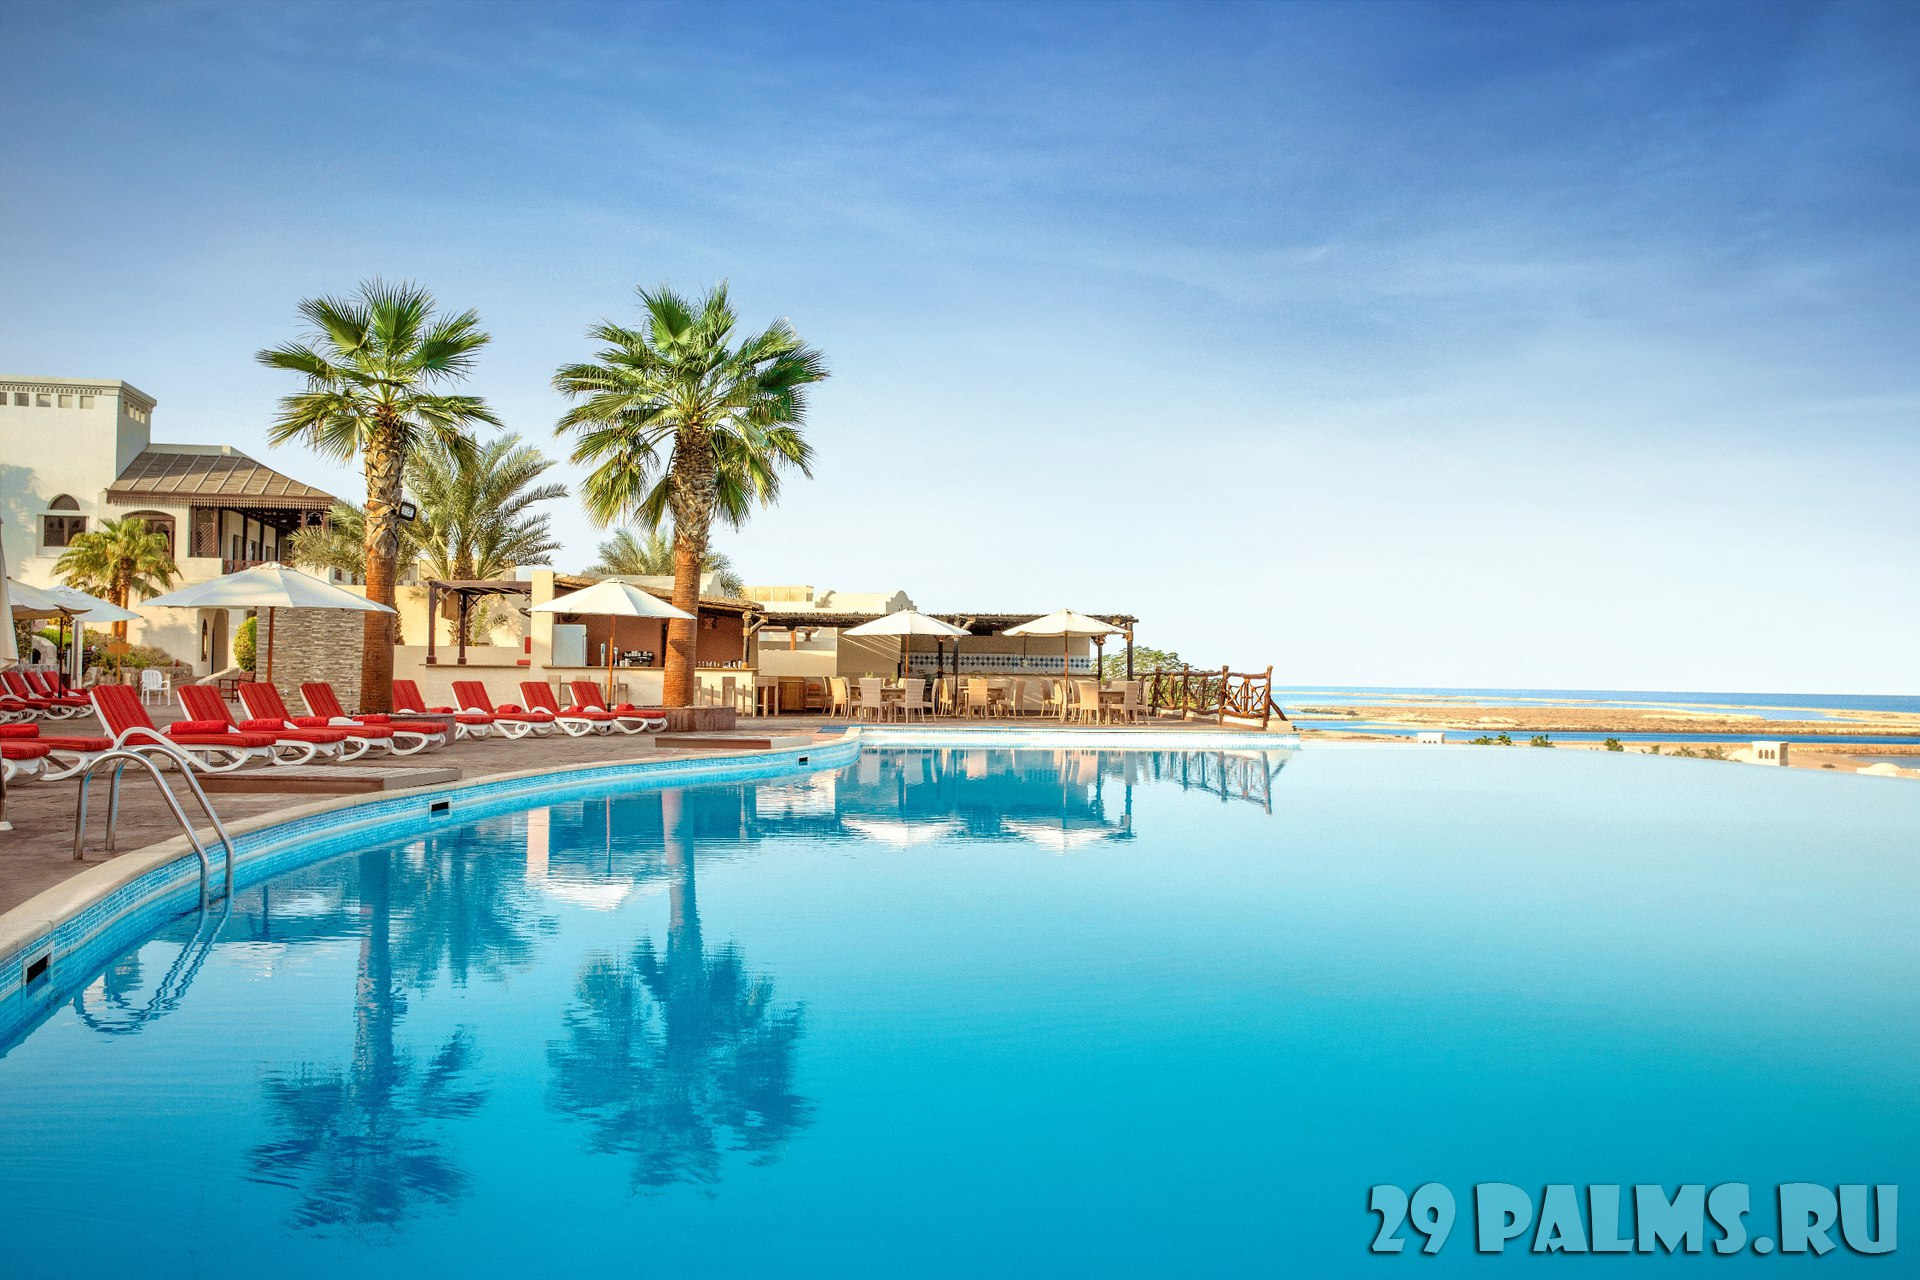 Клуб путешествий Павла Аксенова. ОАЭ. Рас-эль-Хайма. The Cove Rotana Resort Ras Al Khaimah. Sunset Pool